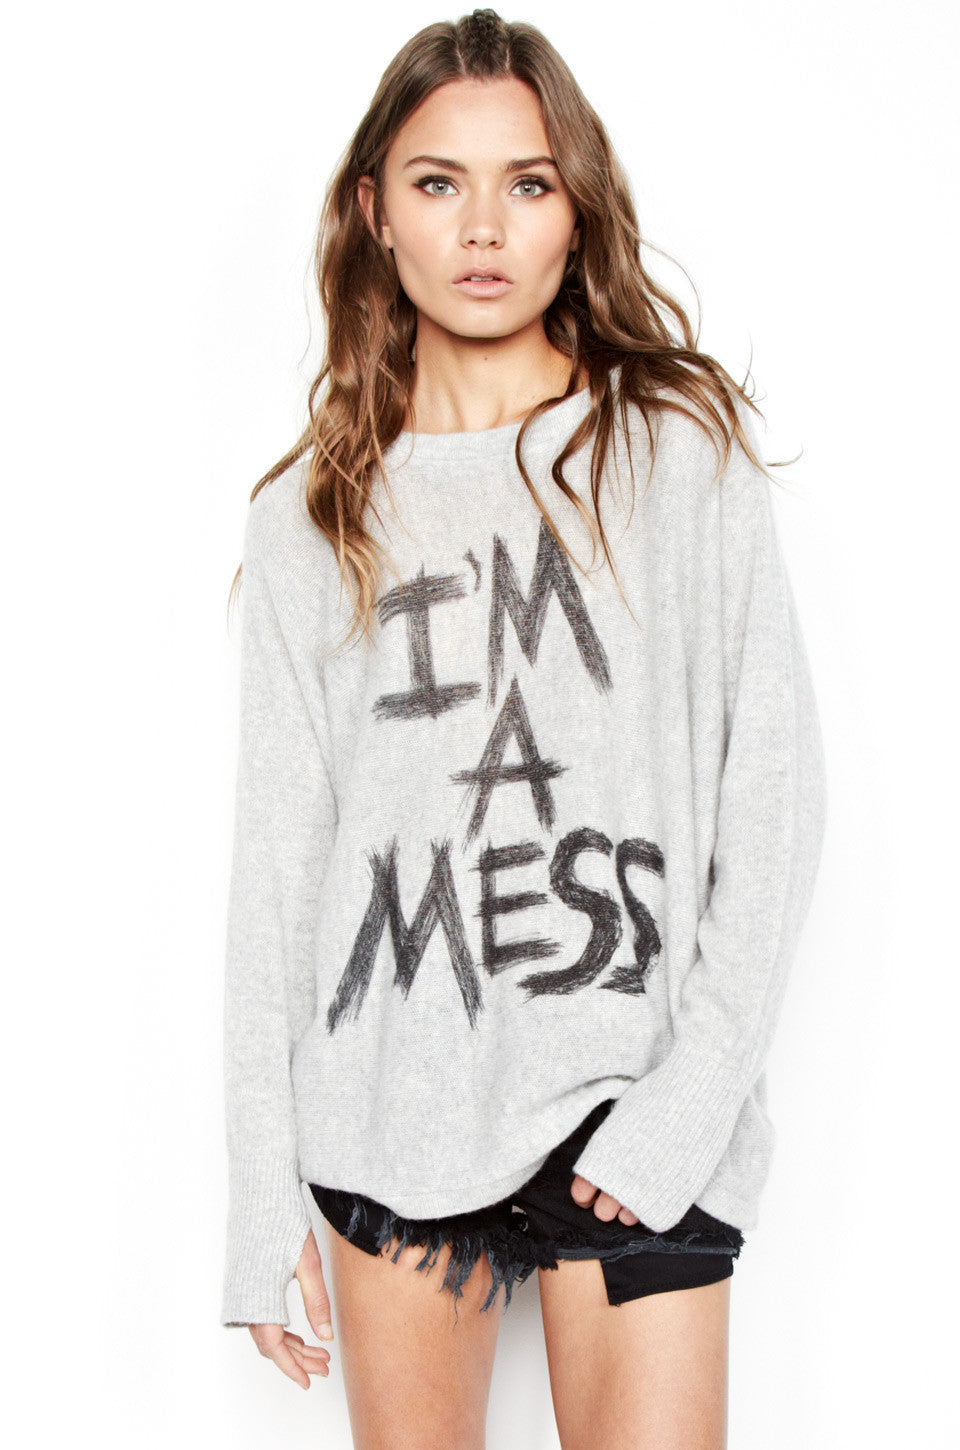 Hollis I'm A Mess L/S Cashmere Pullover Sweater w/Thumbholes - Lauren Moshi - 1